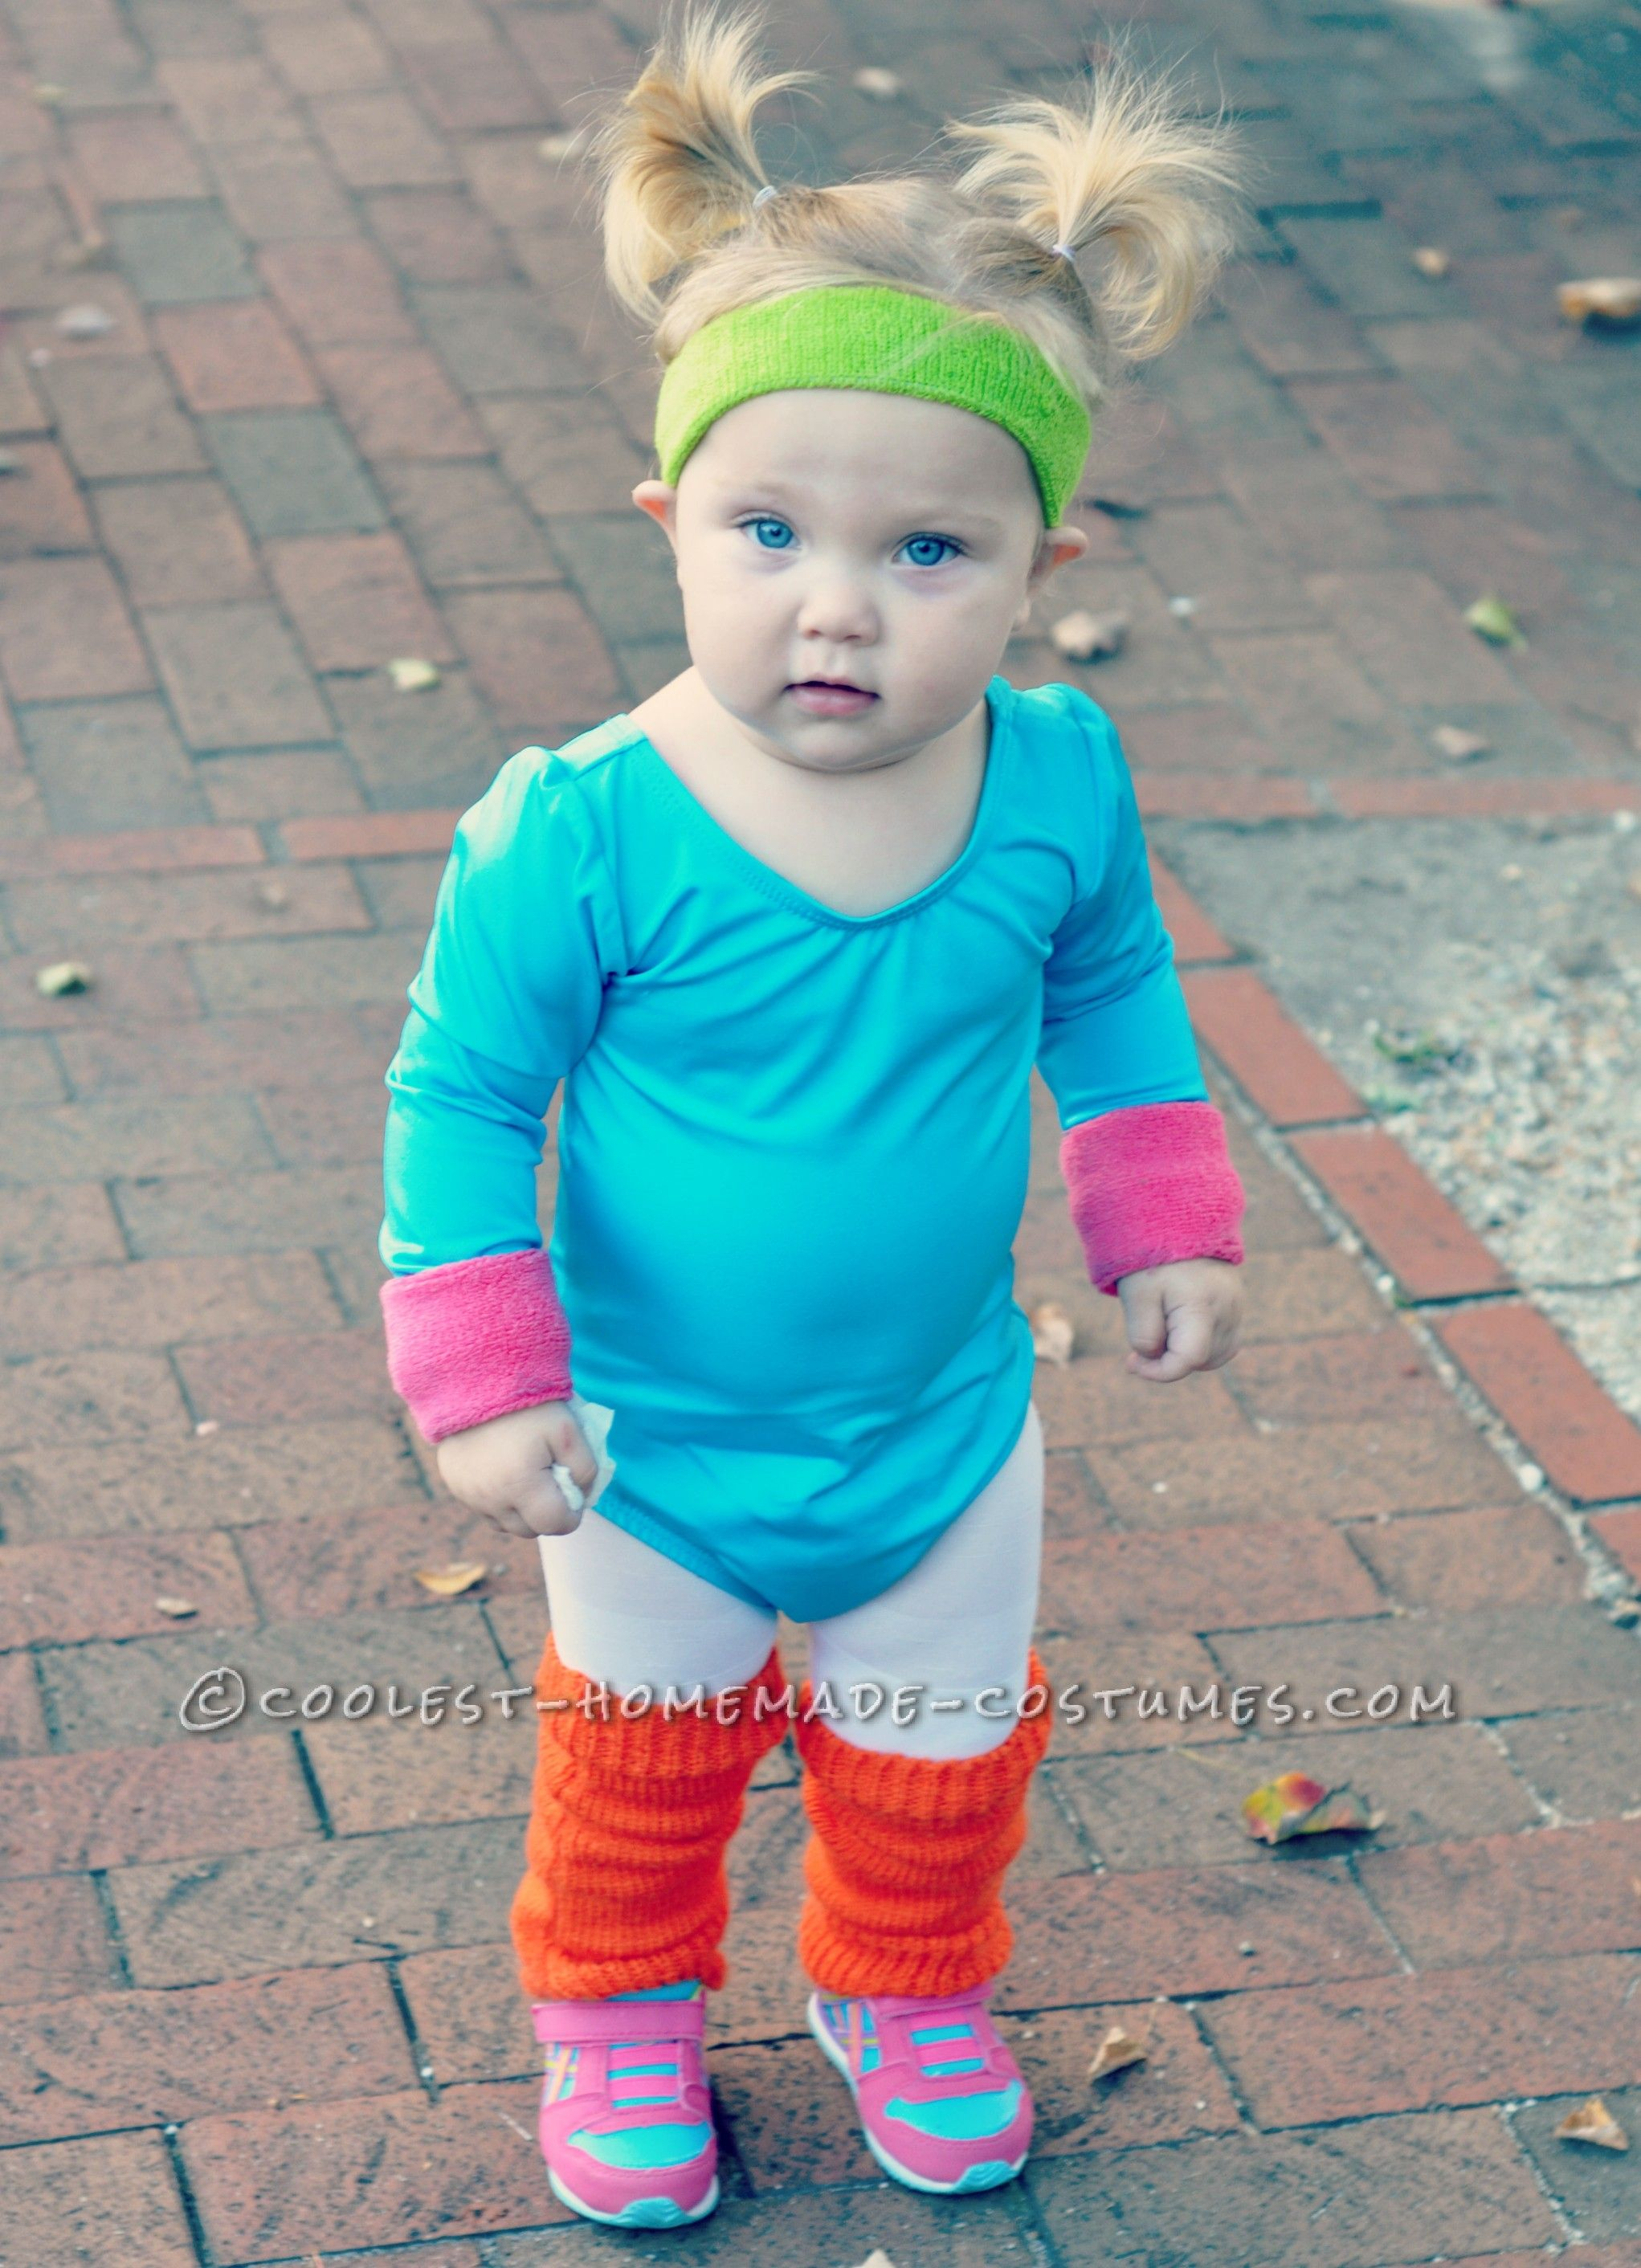 cute jane fonda 80's workout costume for a toddler | coolest